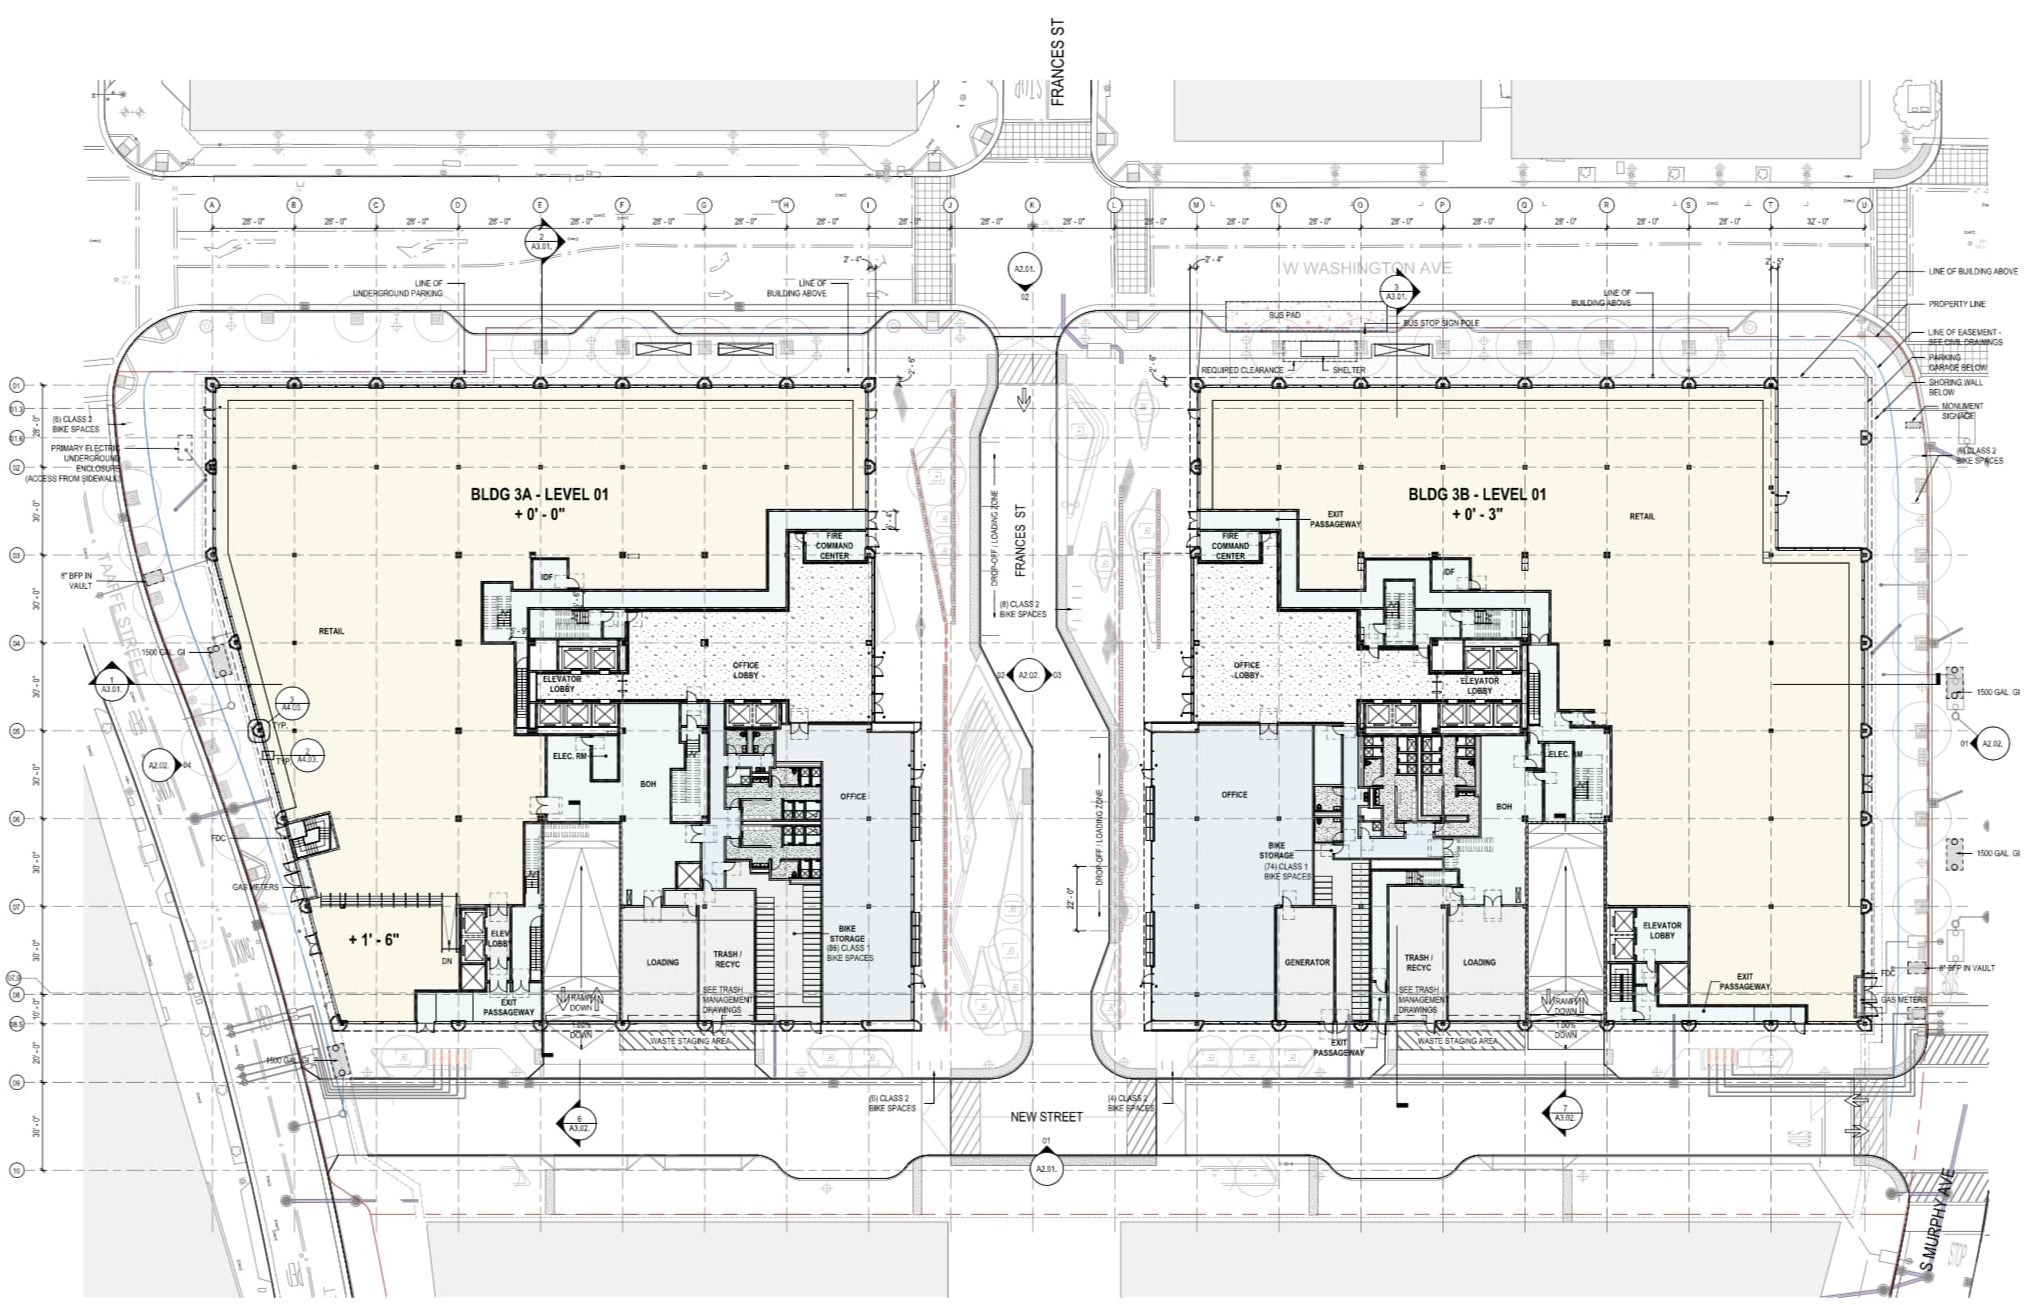 Cityline Building Floor Plan Level 1